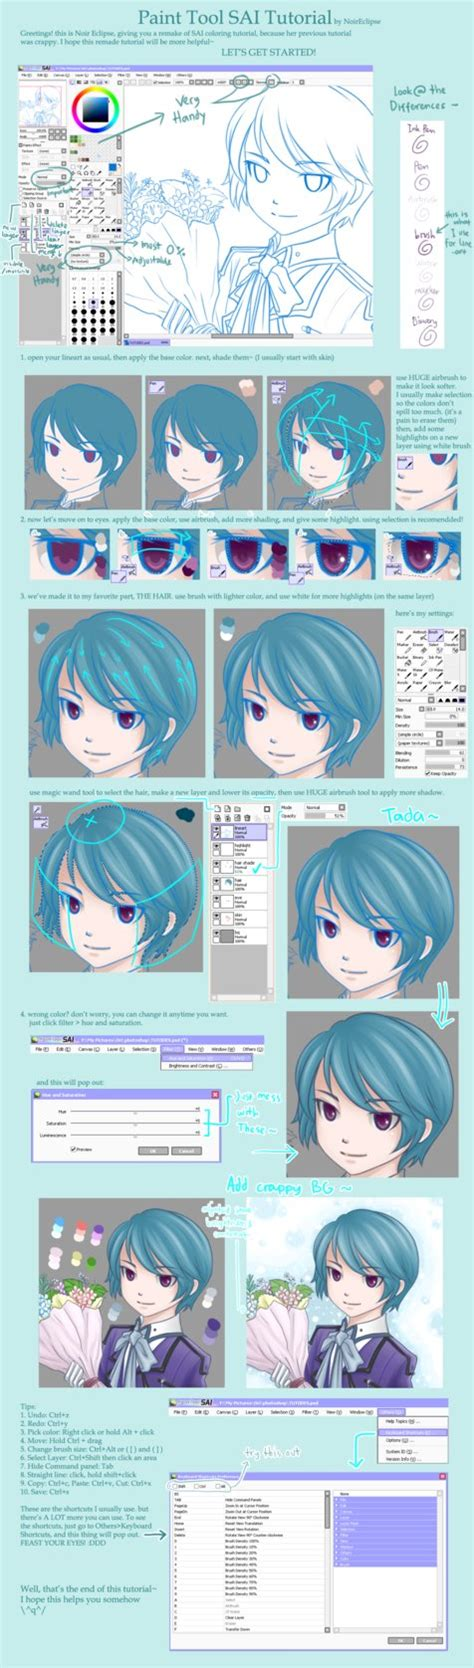 tutorial coloring di paint tool sai paint tool sai tutorial by noireclipse on deviantart